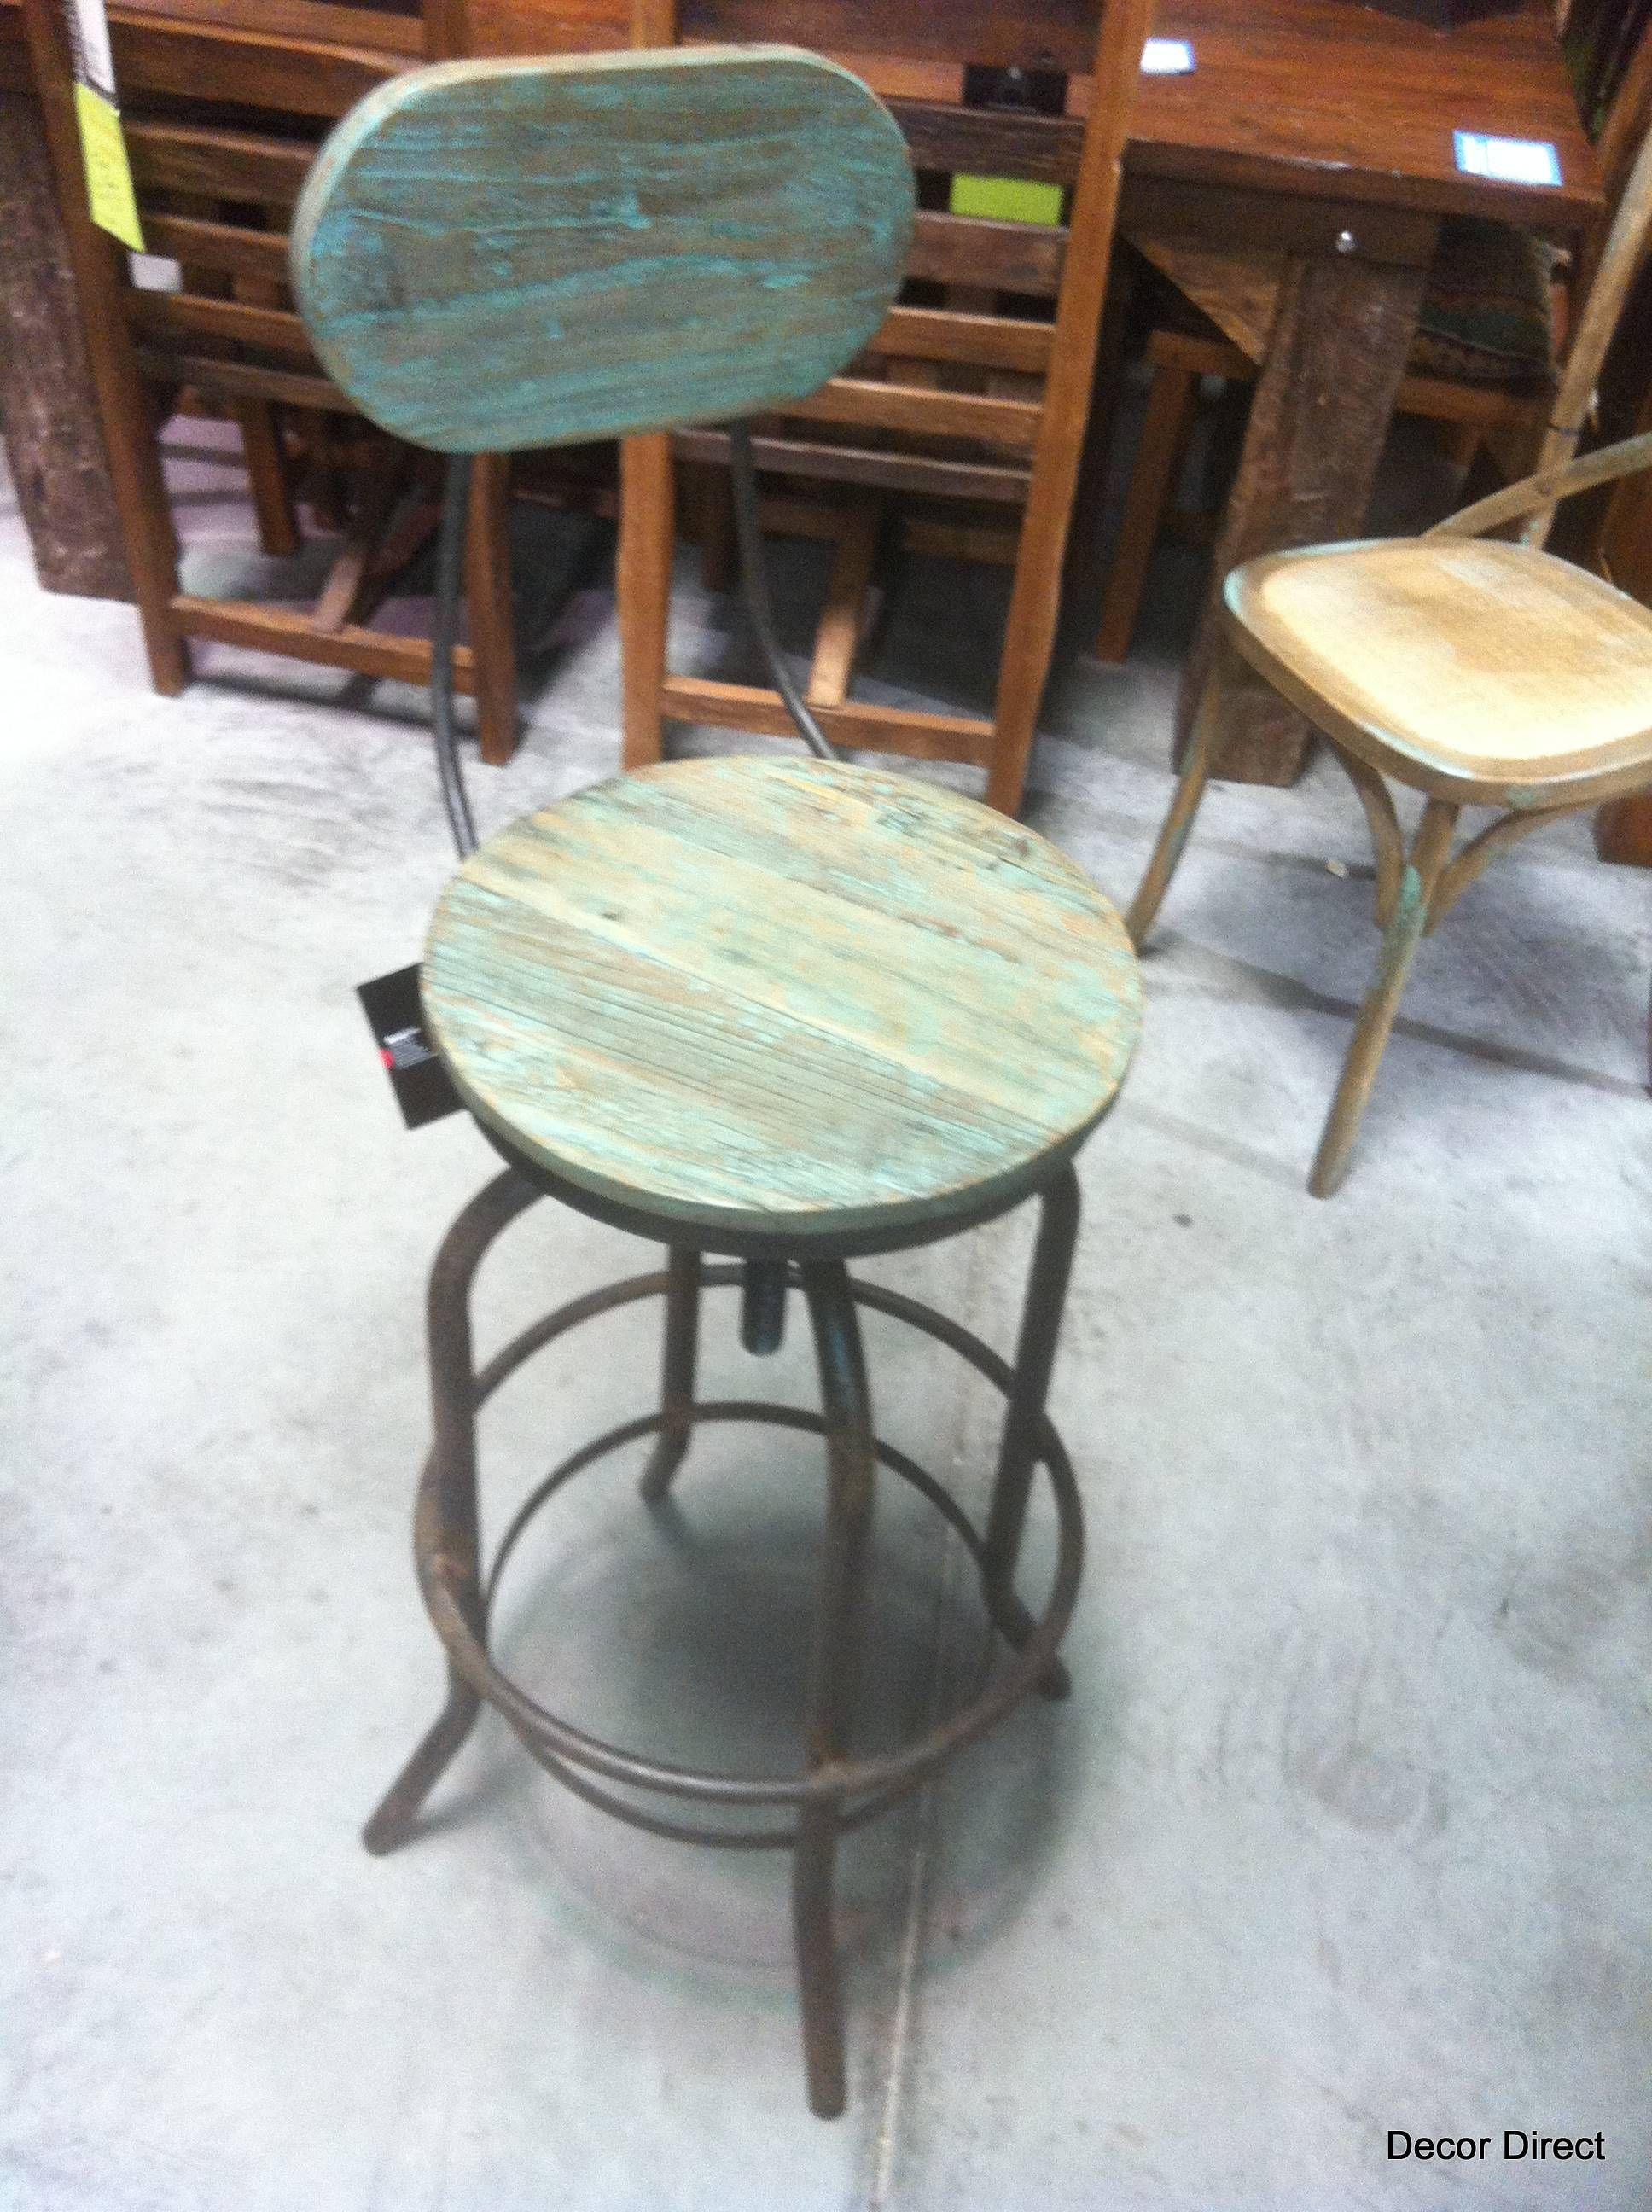 Pleasing Industrial Bar Stool Styled After Toledo Drafting Stool Alphanode Cool Chair Designs And Ideas Alphanodeonline